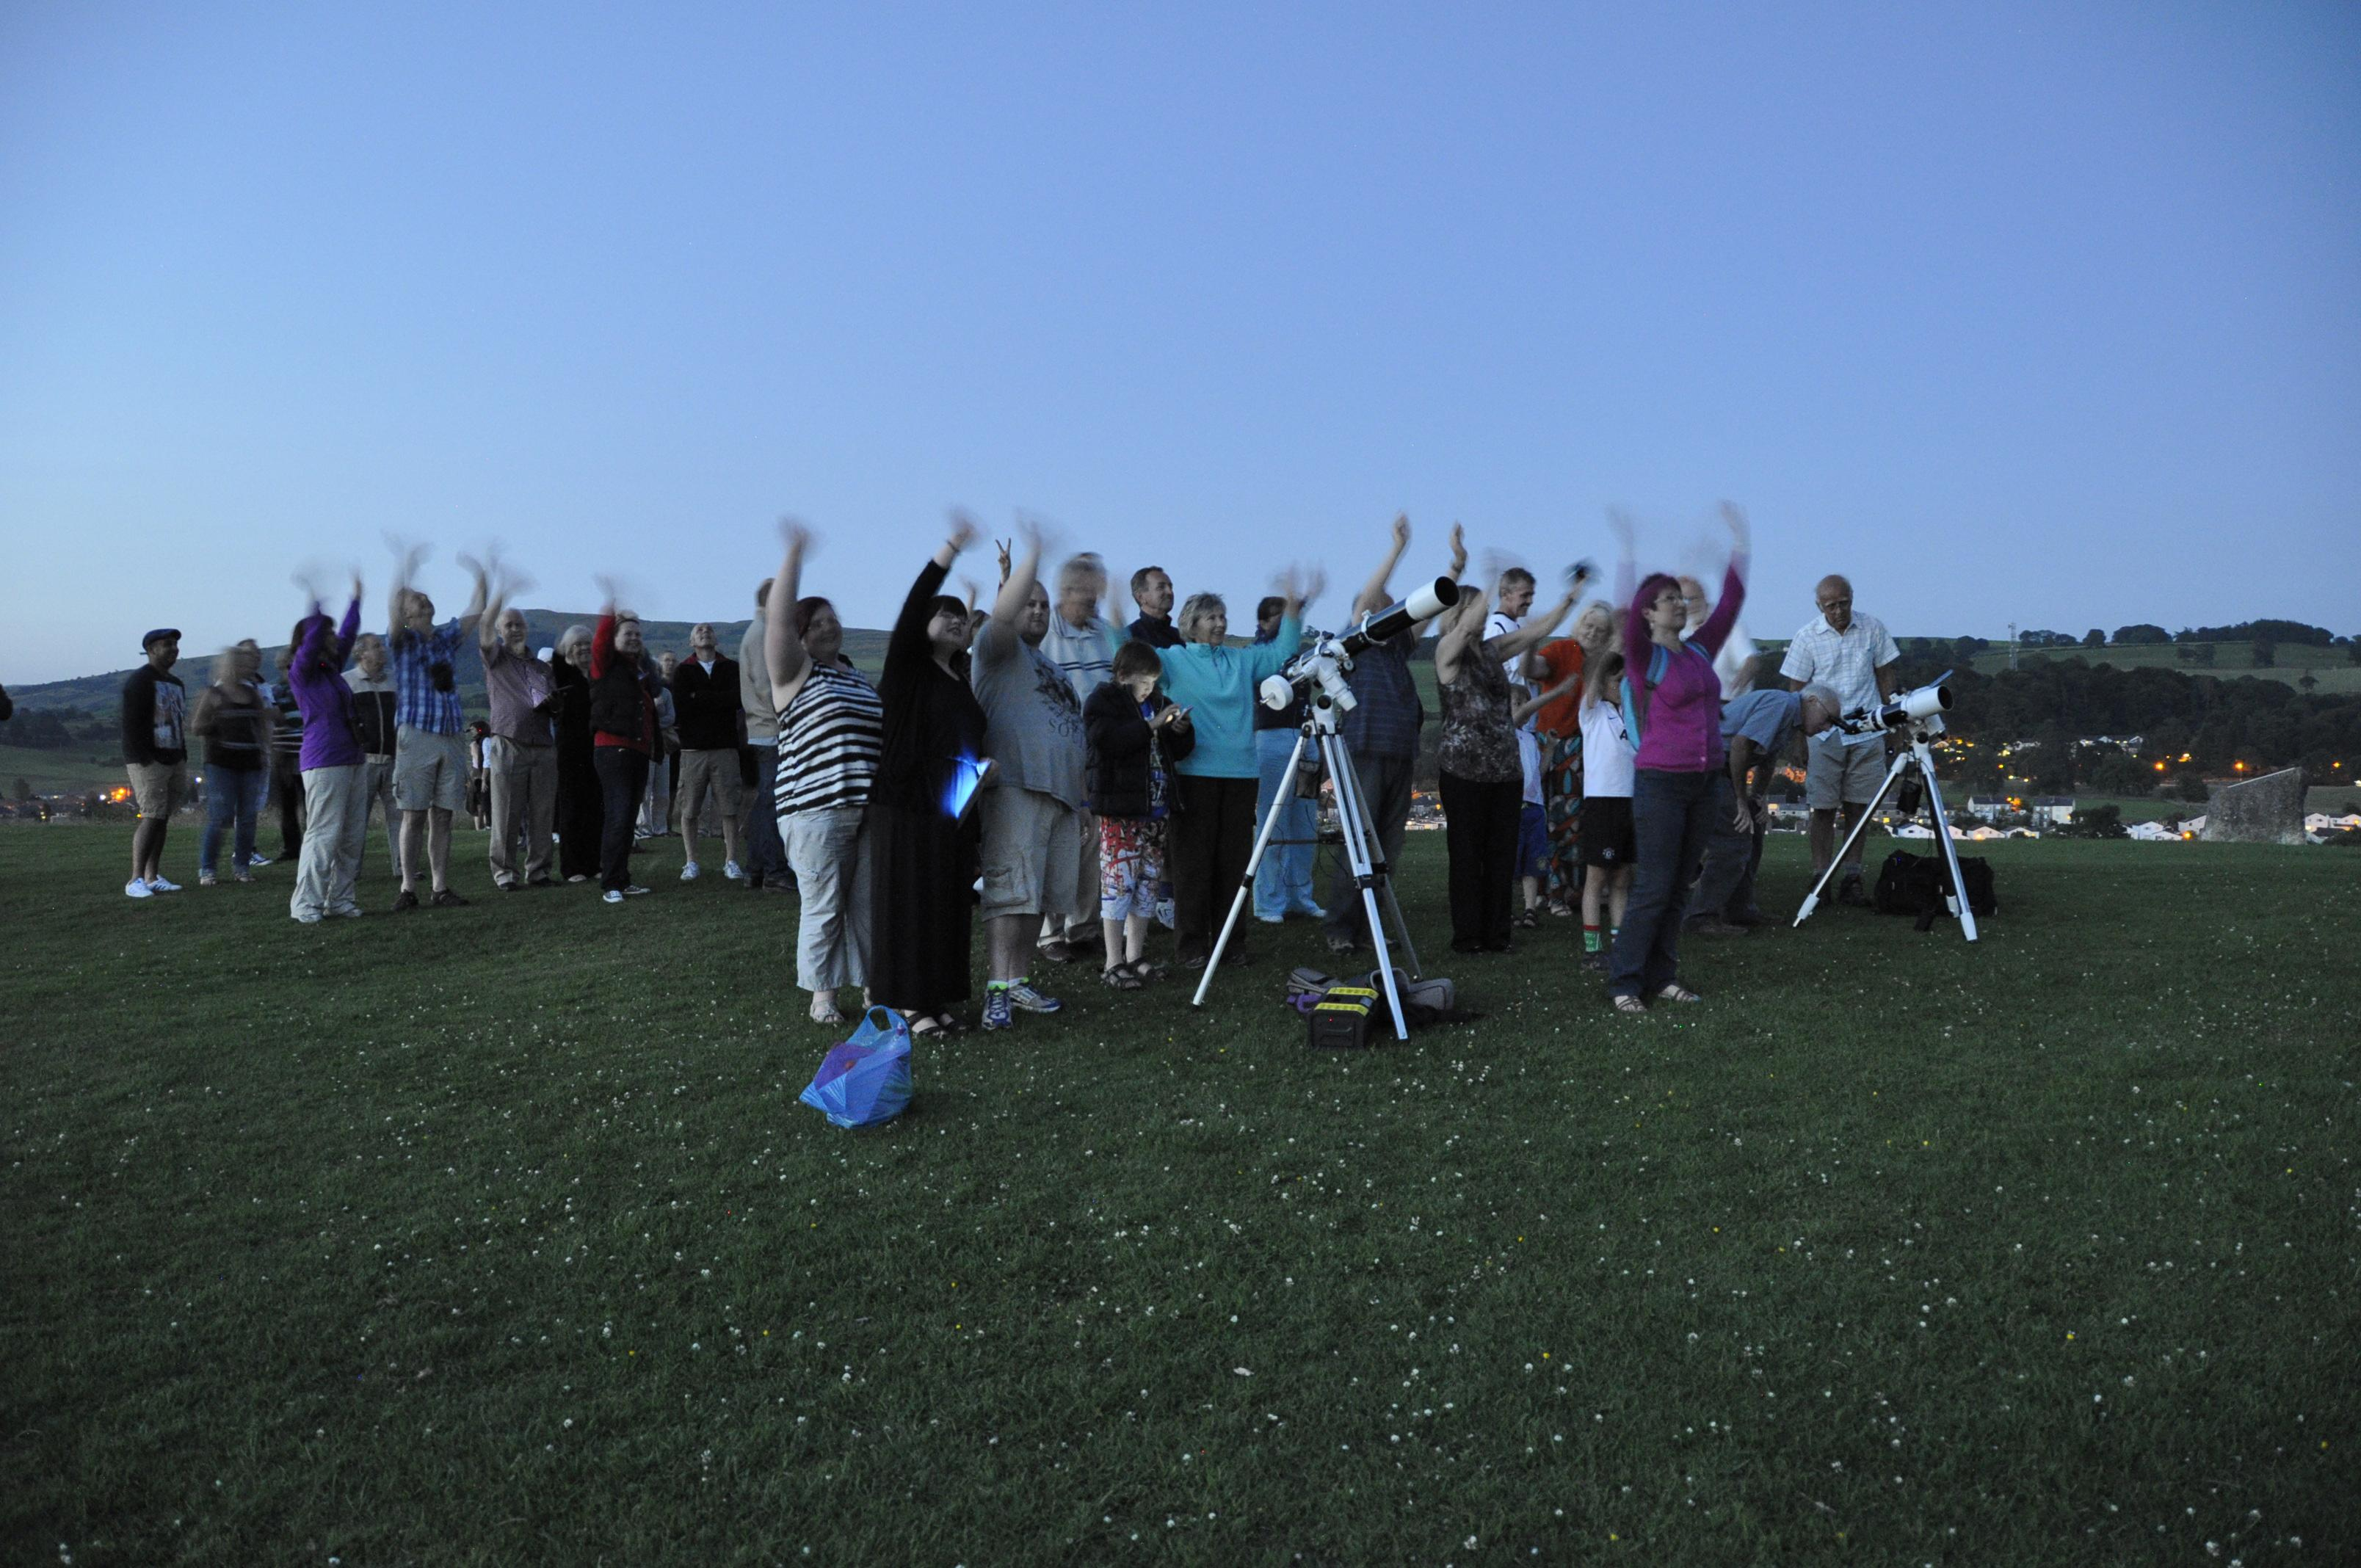 Telescopes, telephone and tablets at the ready, a group of amateur astronomers gathers under twilight skies to wave at Saturn on July 19, 2013. Their gathering in the town of Kendal in England's Cumbria district was one of many international celebrations as Earth was imaged from deep space by NASA's Cassini spacecraft.